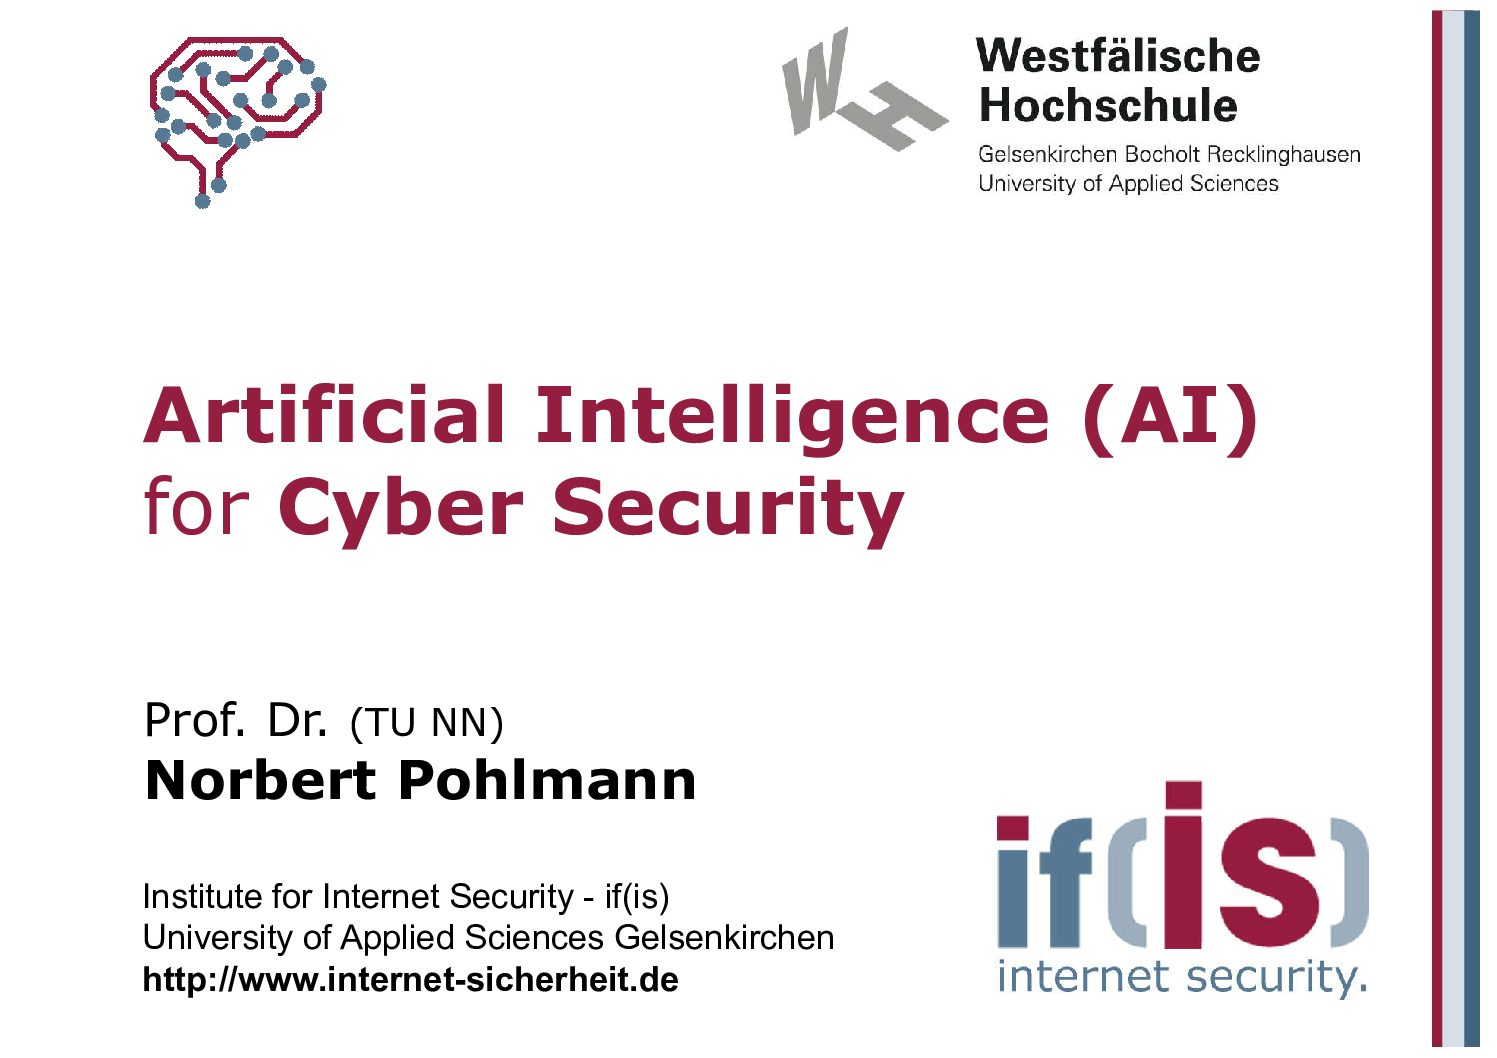 372-Artificial-Intelligence-AI-for-Cyber-Security